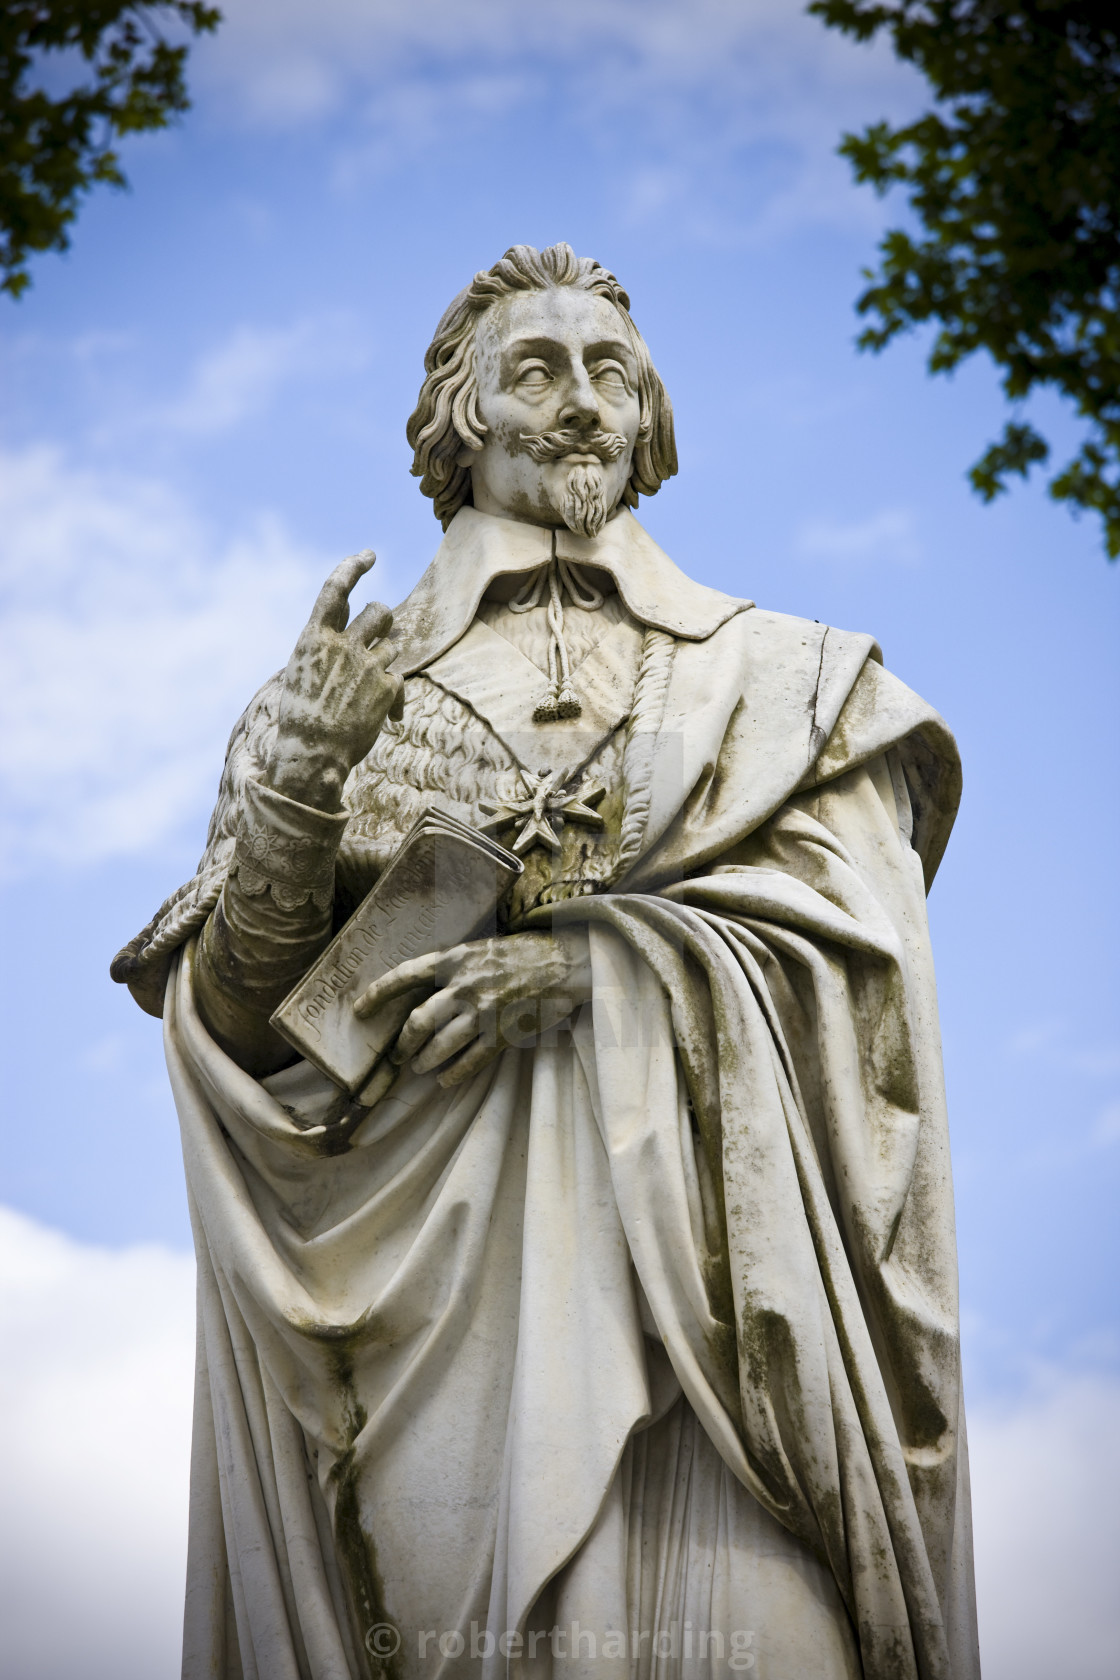 """""""Stone statue monument of Cardinal Richelieu, former Prime Minister, in the..."""" stock image"""